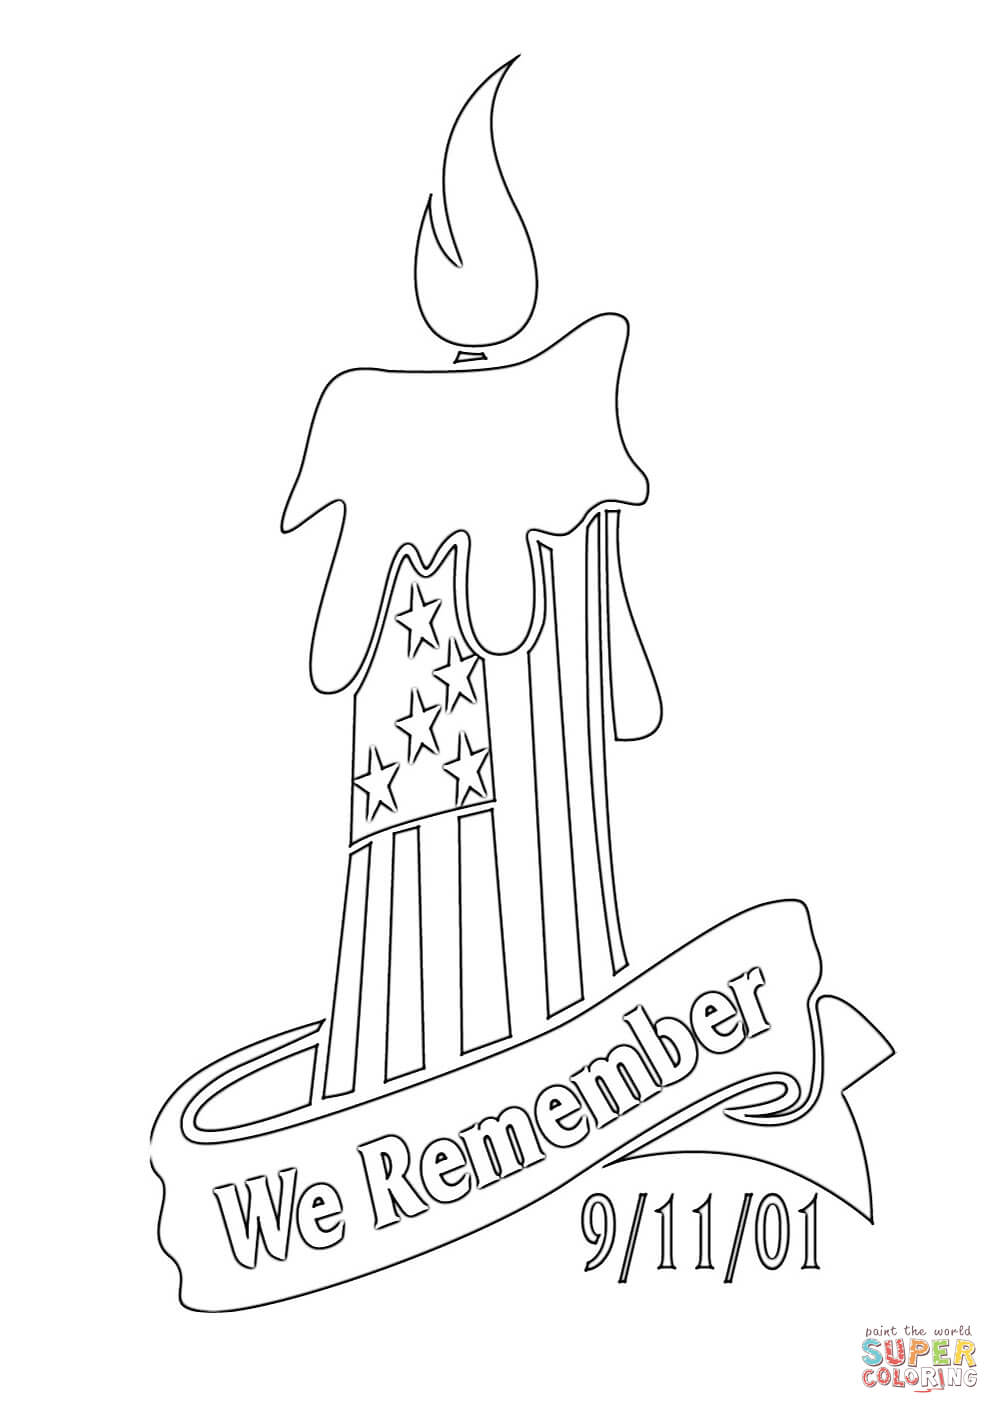 Coloring pages 9/11